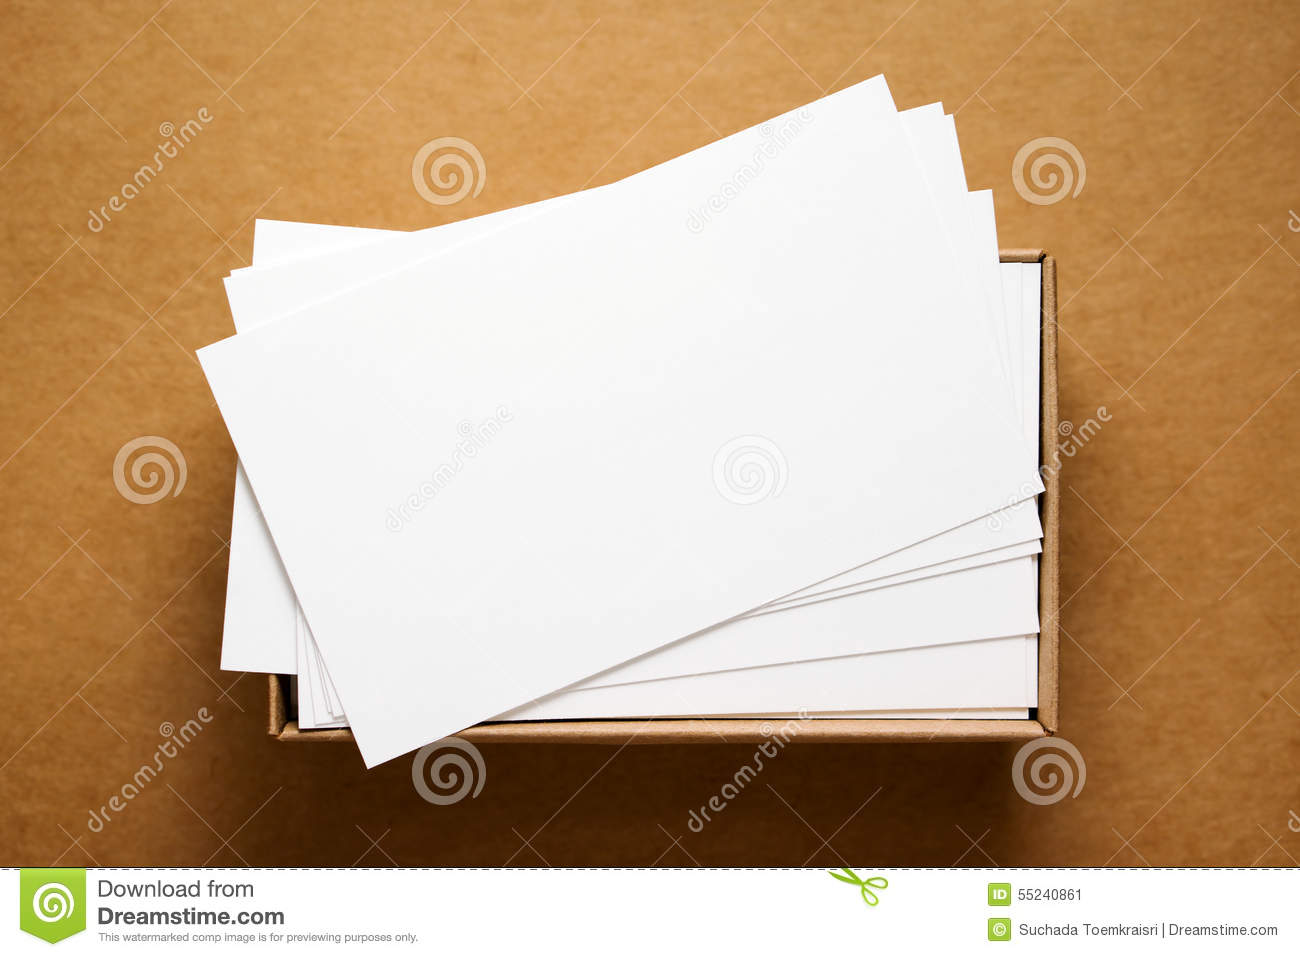 Business Card On Kraft Cardboard Stock Image - Image of space, white ...